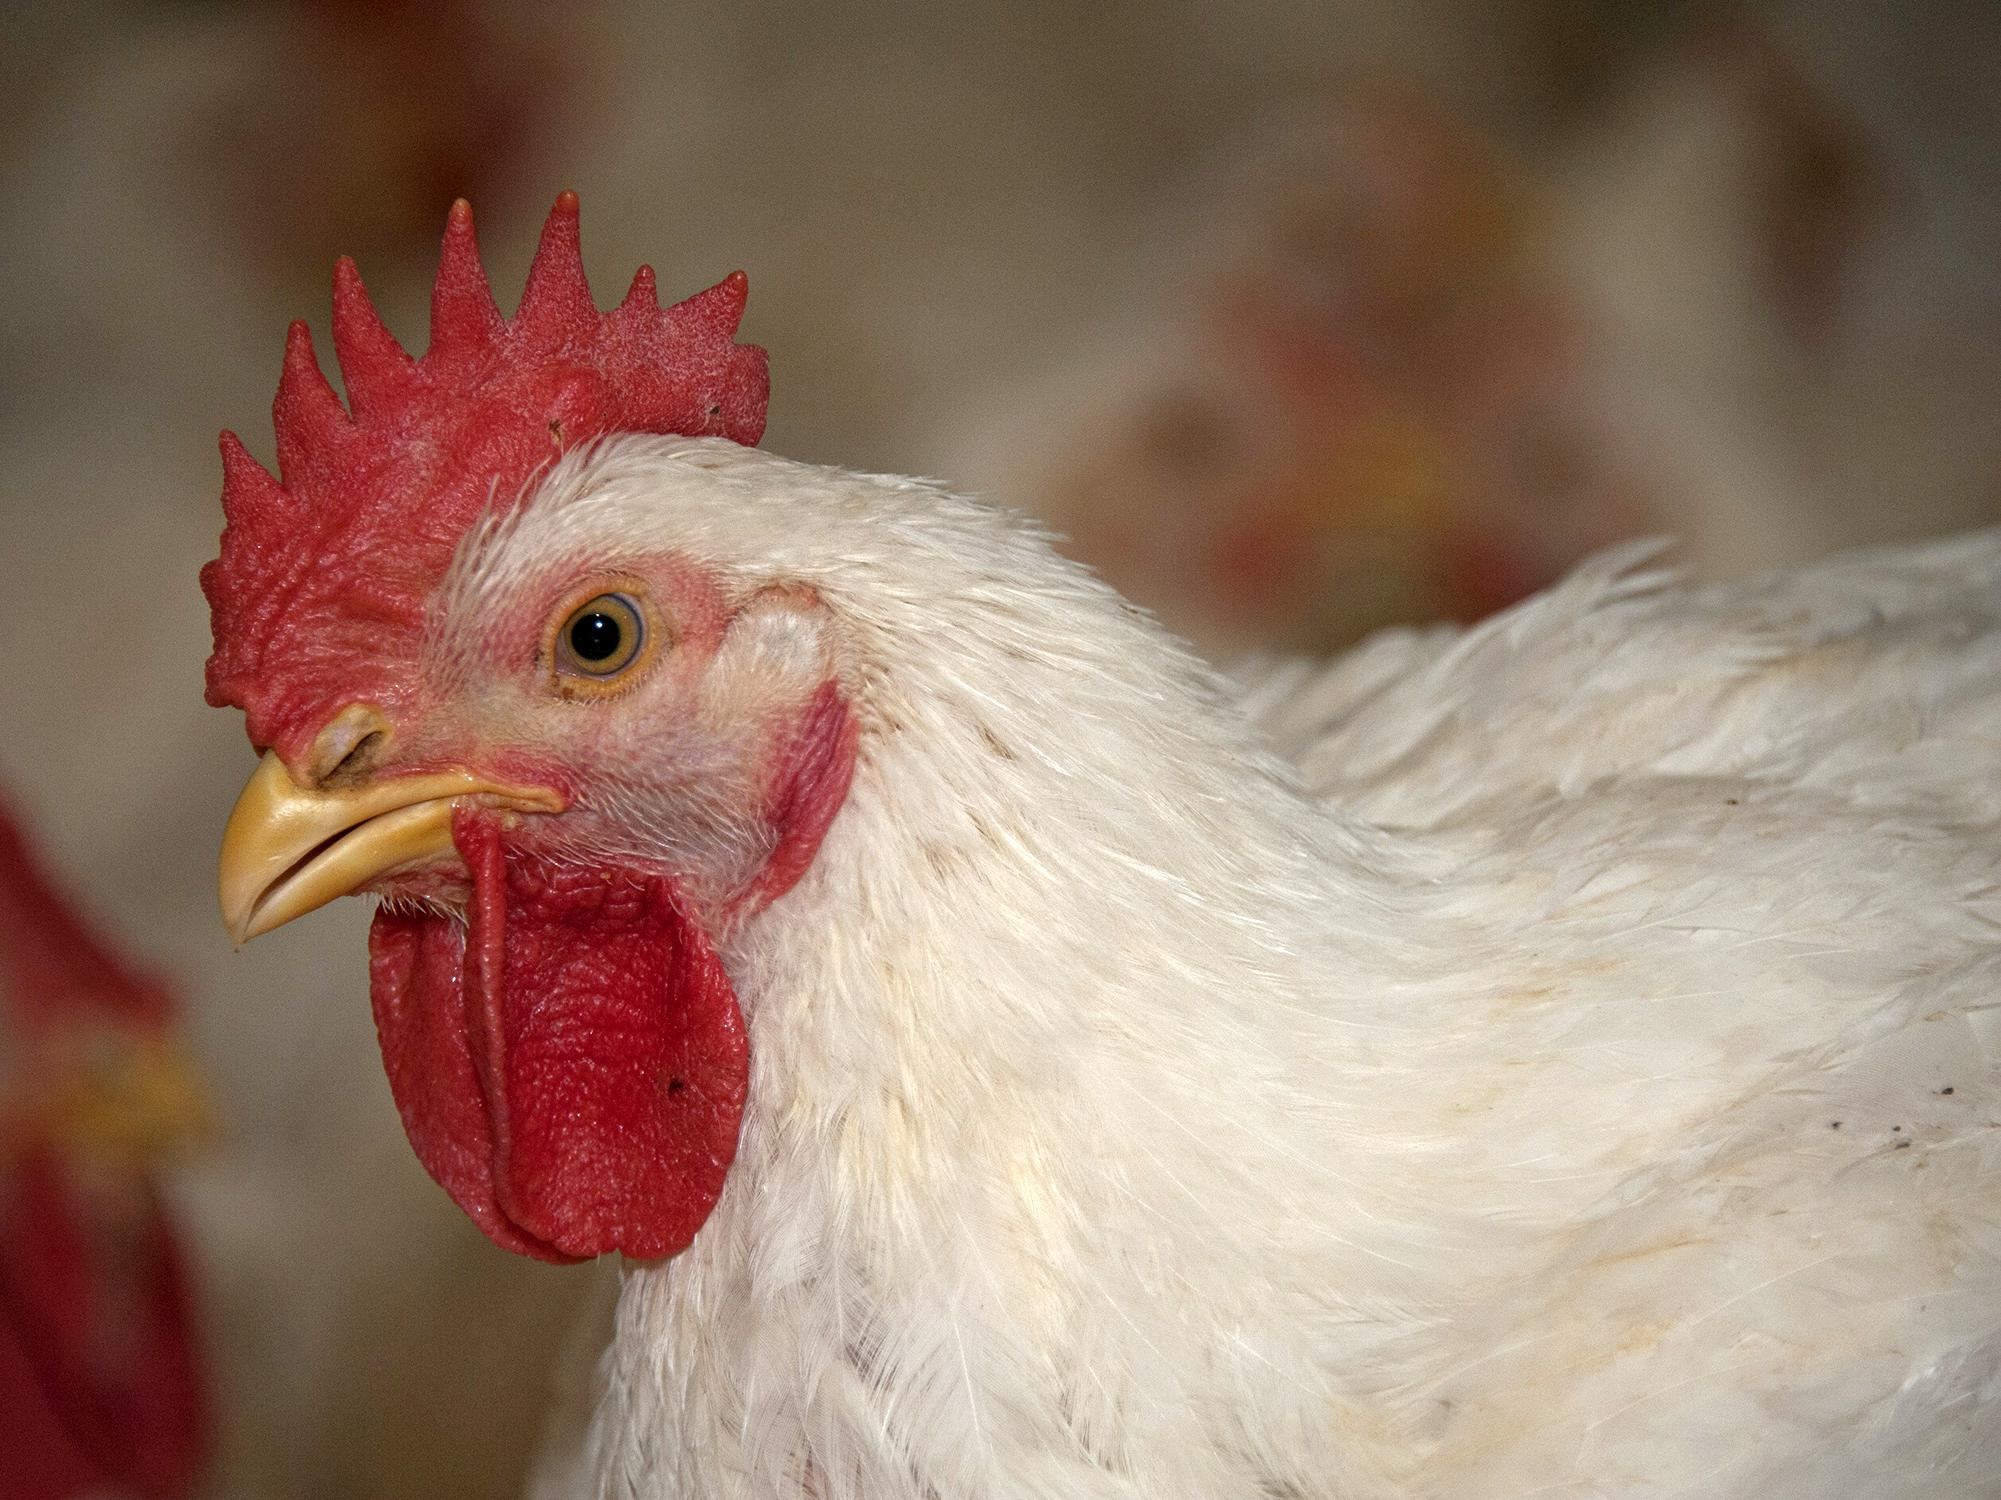 A close-up of a commercial chicken with white feathers is shown in the right three-quarters of the foreground with other chickens blurred in the background.